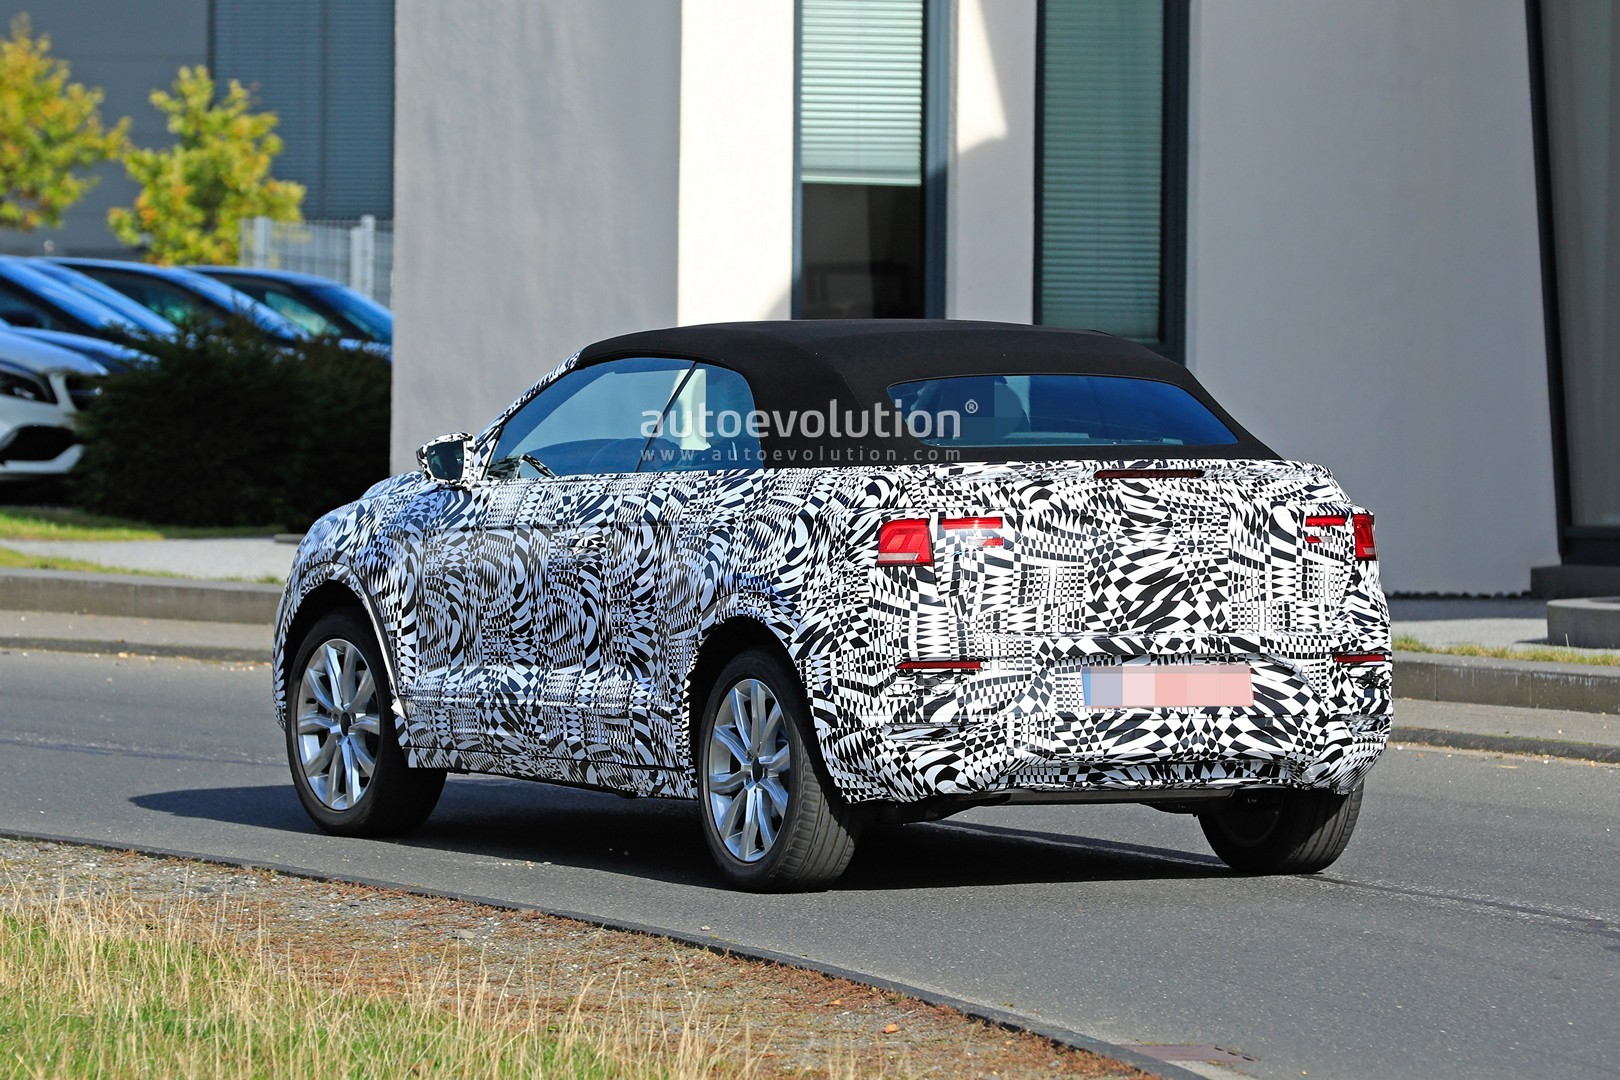 2020 VW T-Roc Convertible Spied Testing for the First Time - autoevolution